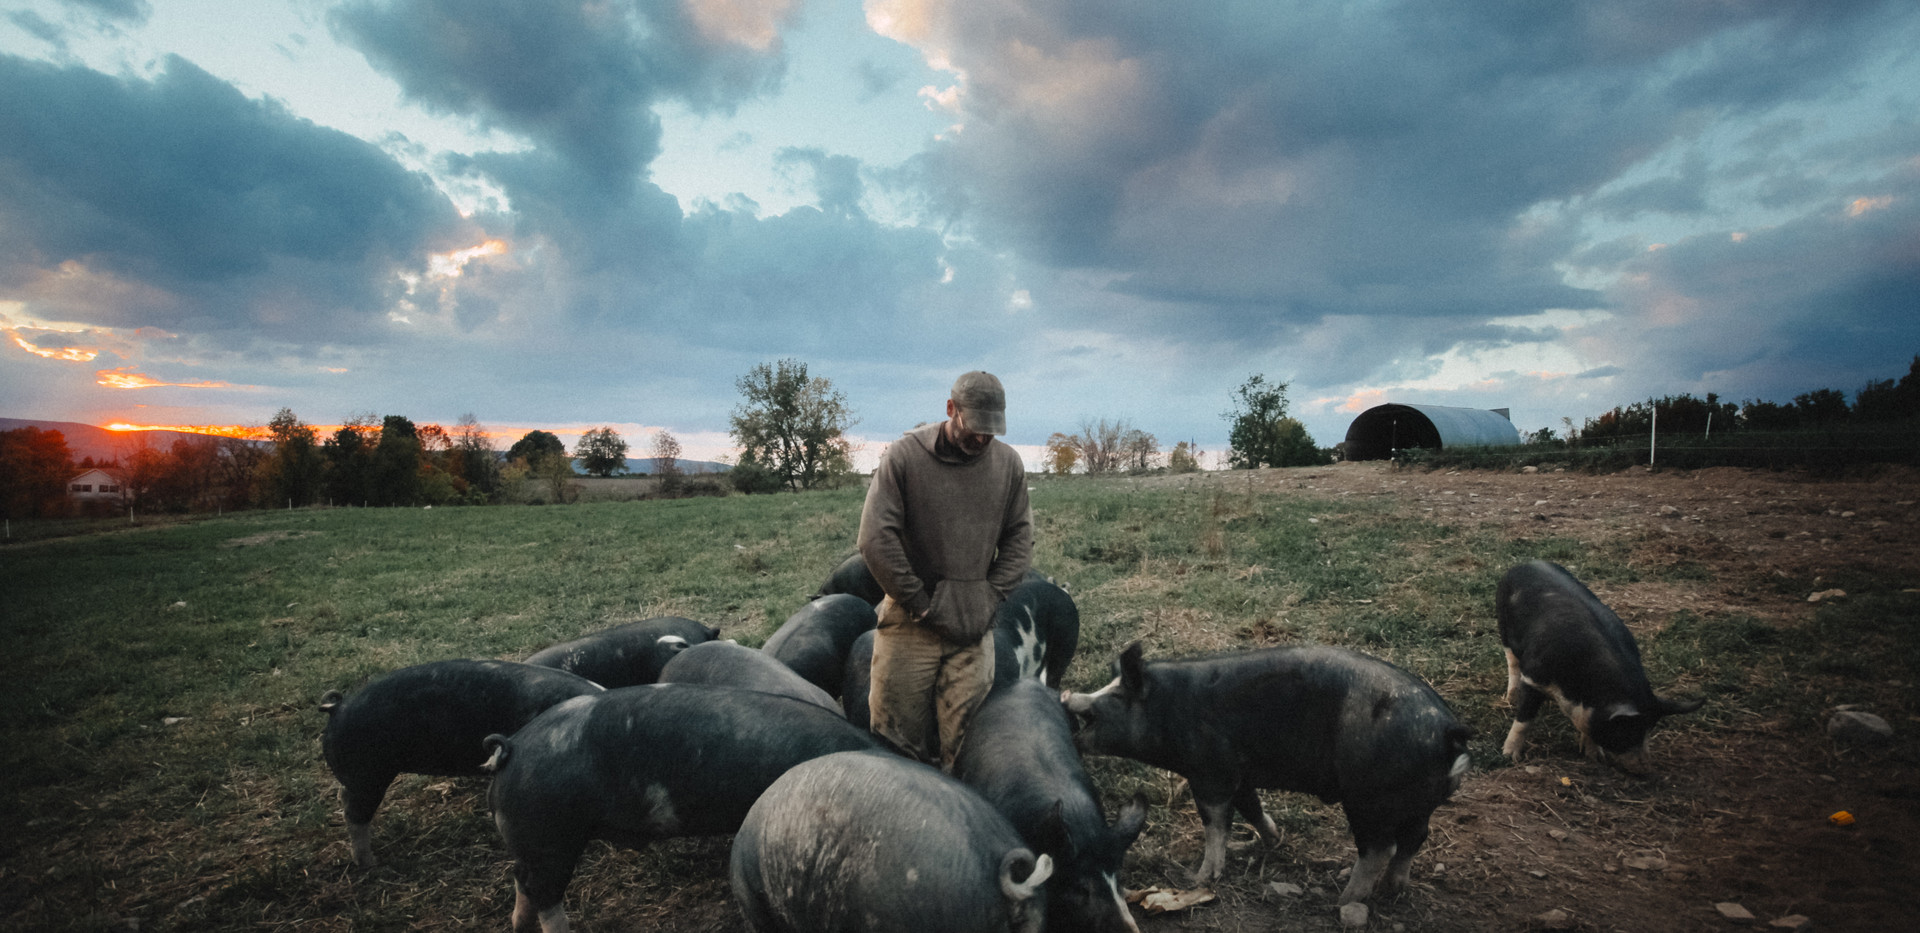 Bob with Pigs